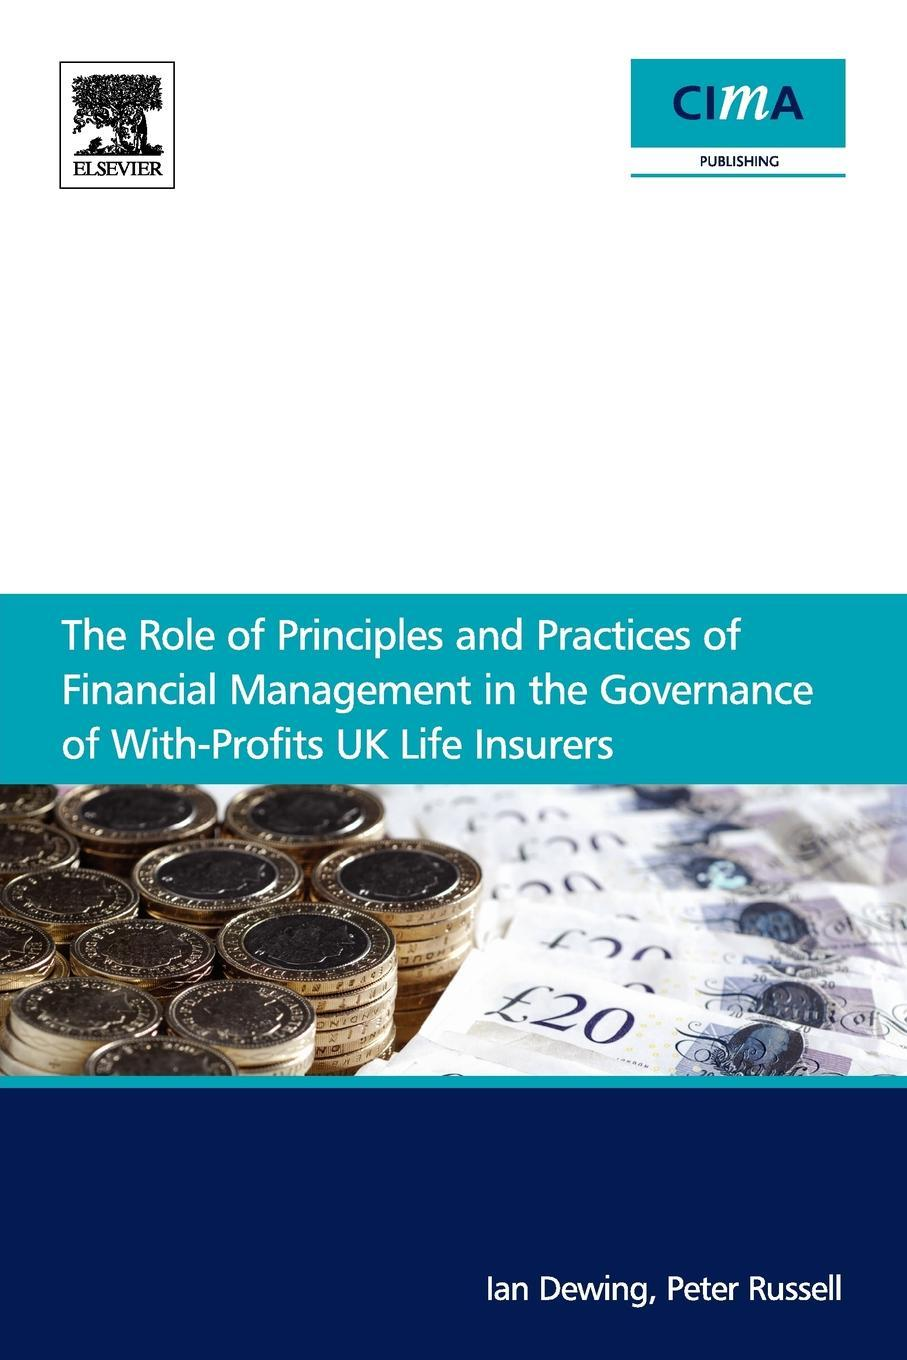 The role of principles and practices of financial management in the governance of with-profits UK life insurers EB9780080963853